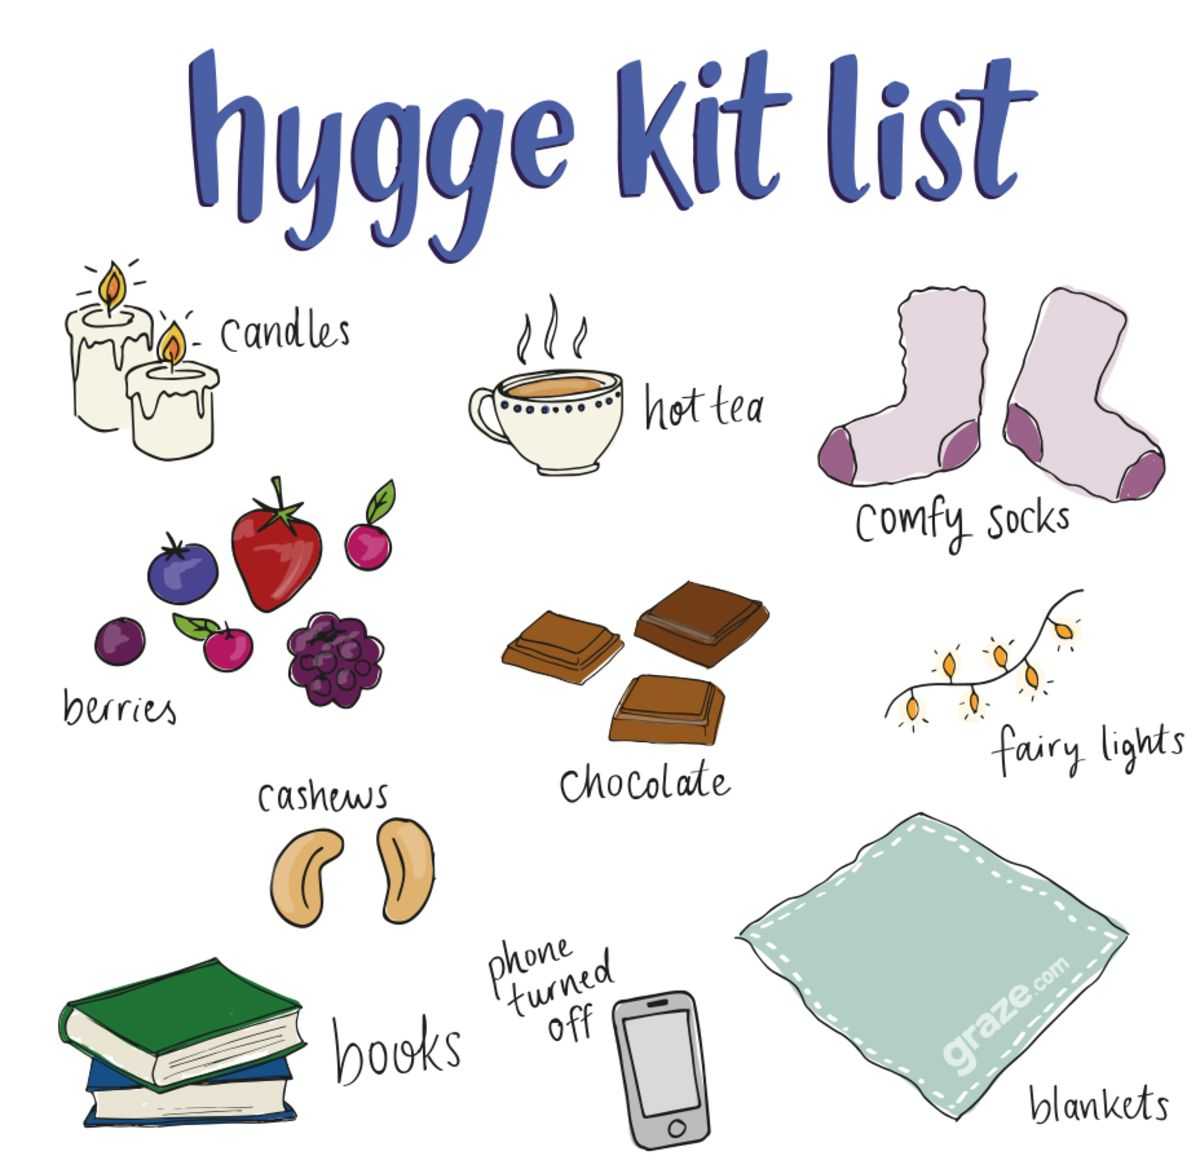 hygge kit list